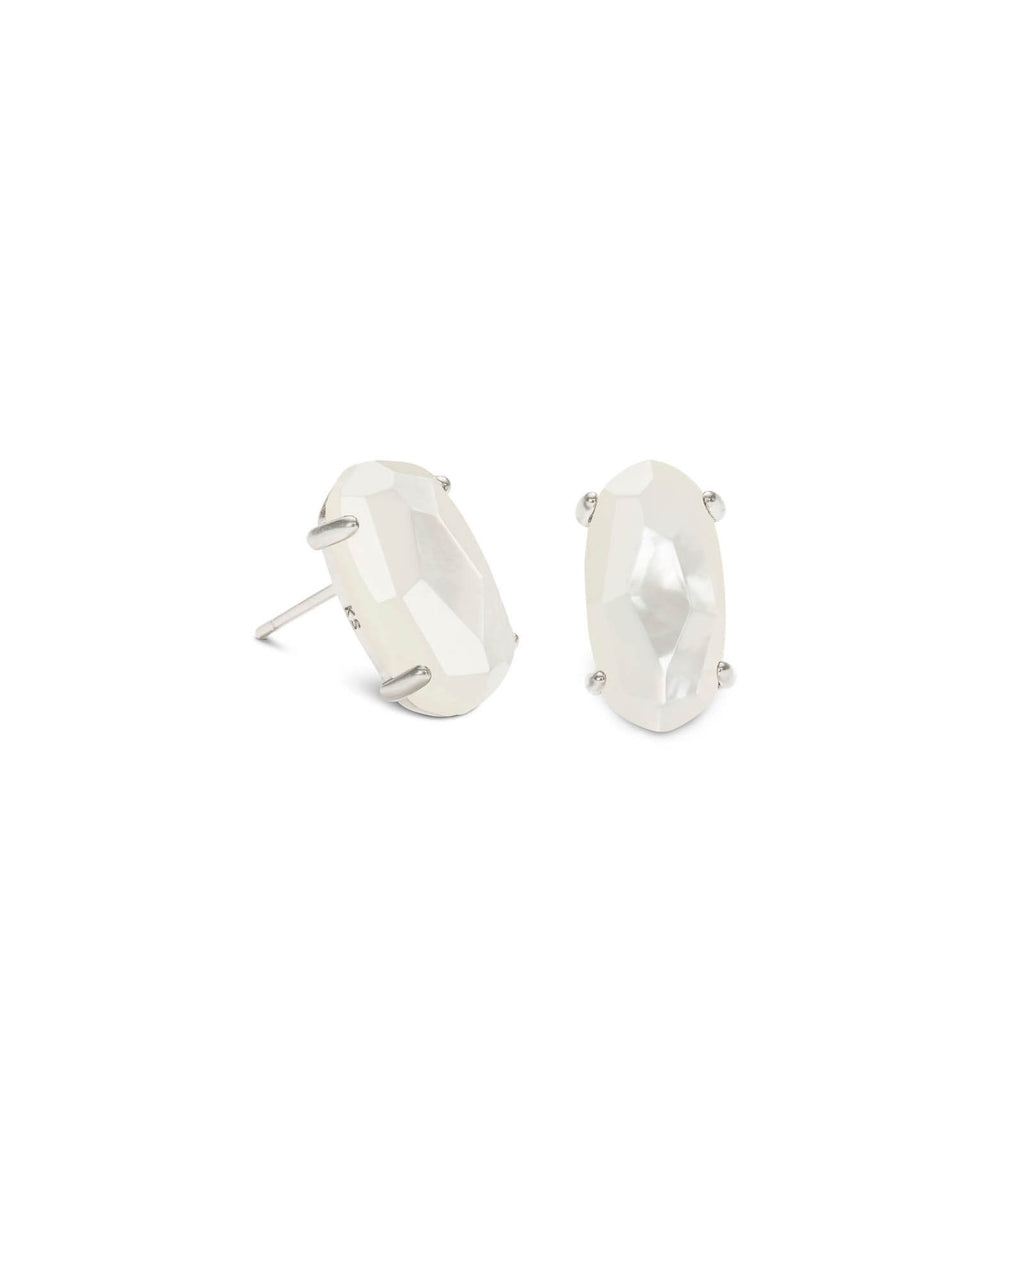 KENDRA SCOTT Betty Silver Stud Earrings - Ivory Mother of Pearl